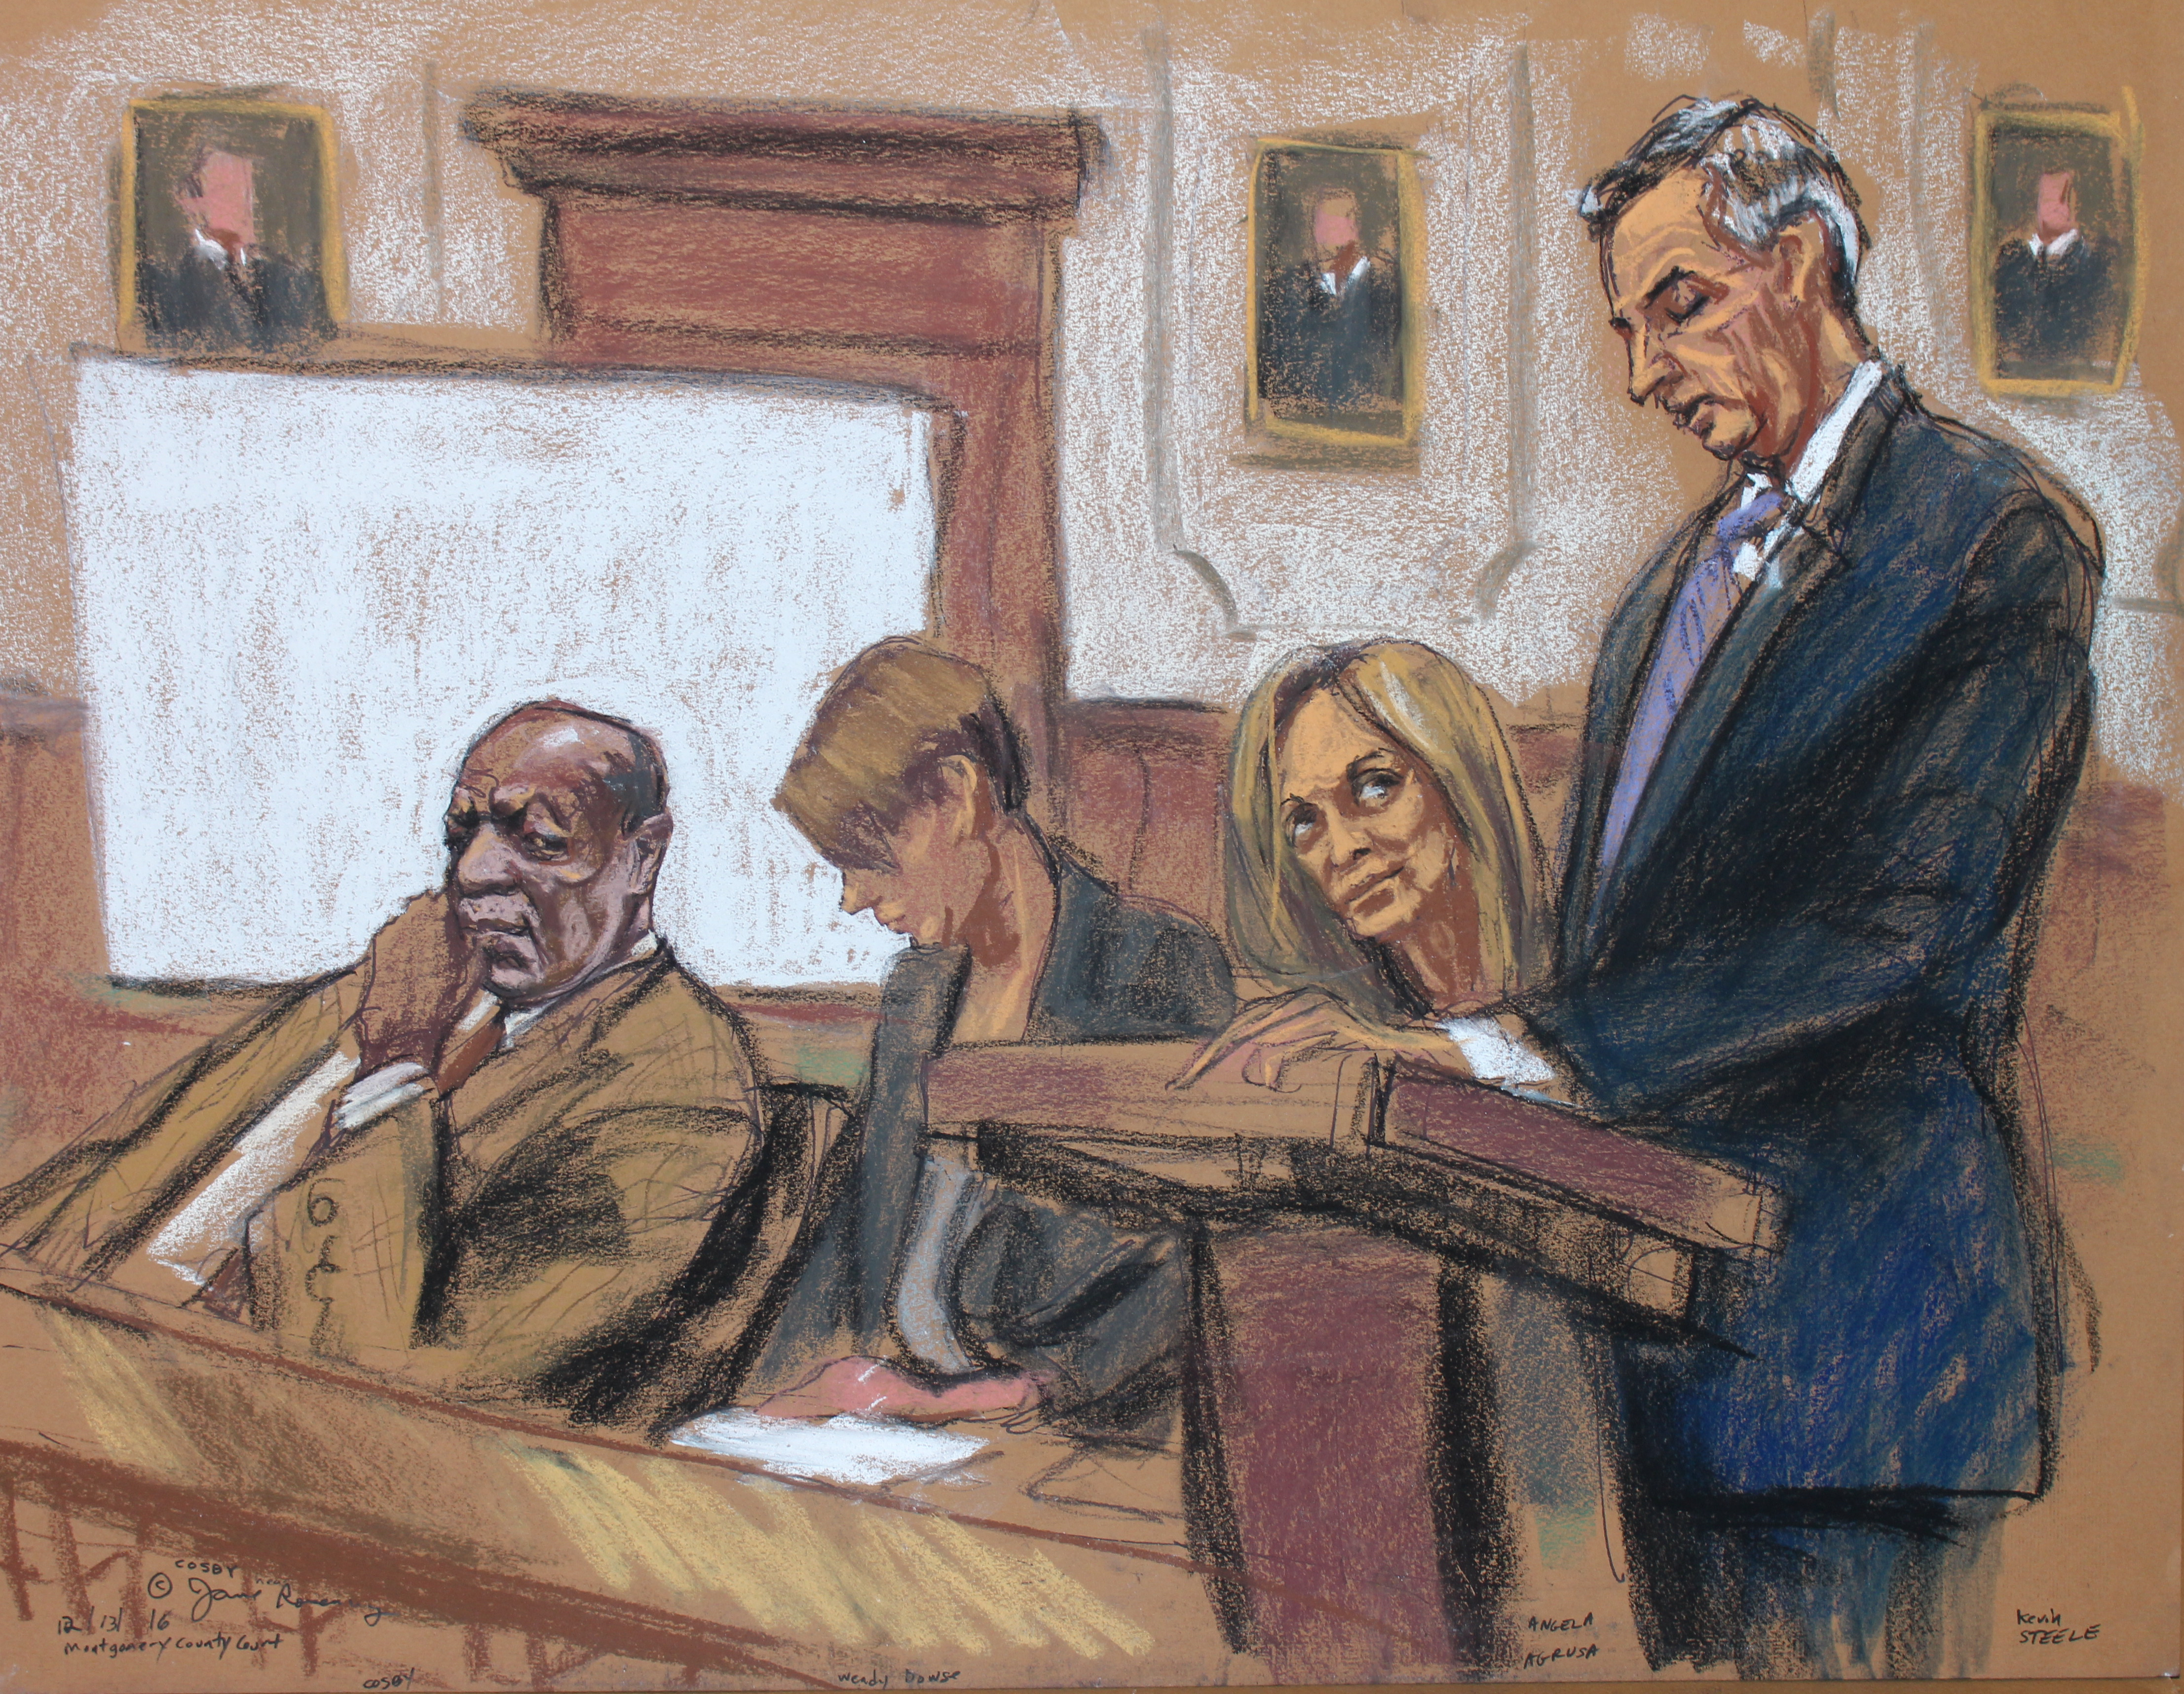 Exclusive: Interview with the Courtroom Sketch Artist from the Cosby Trial